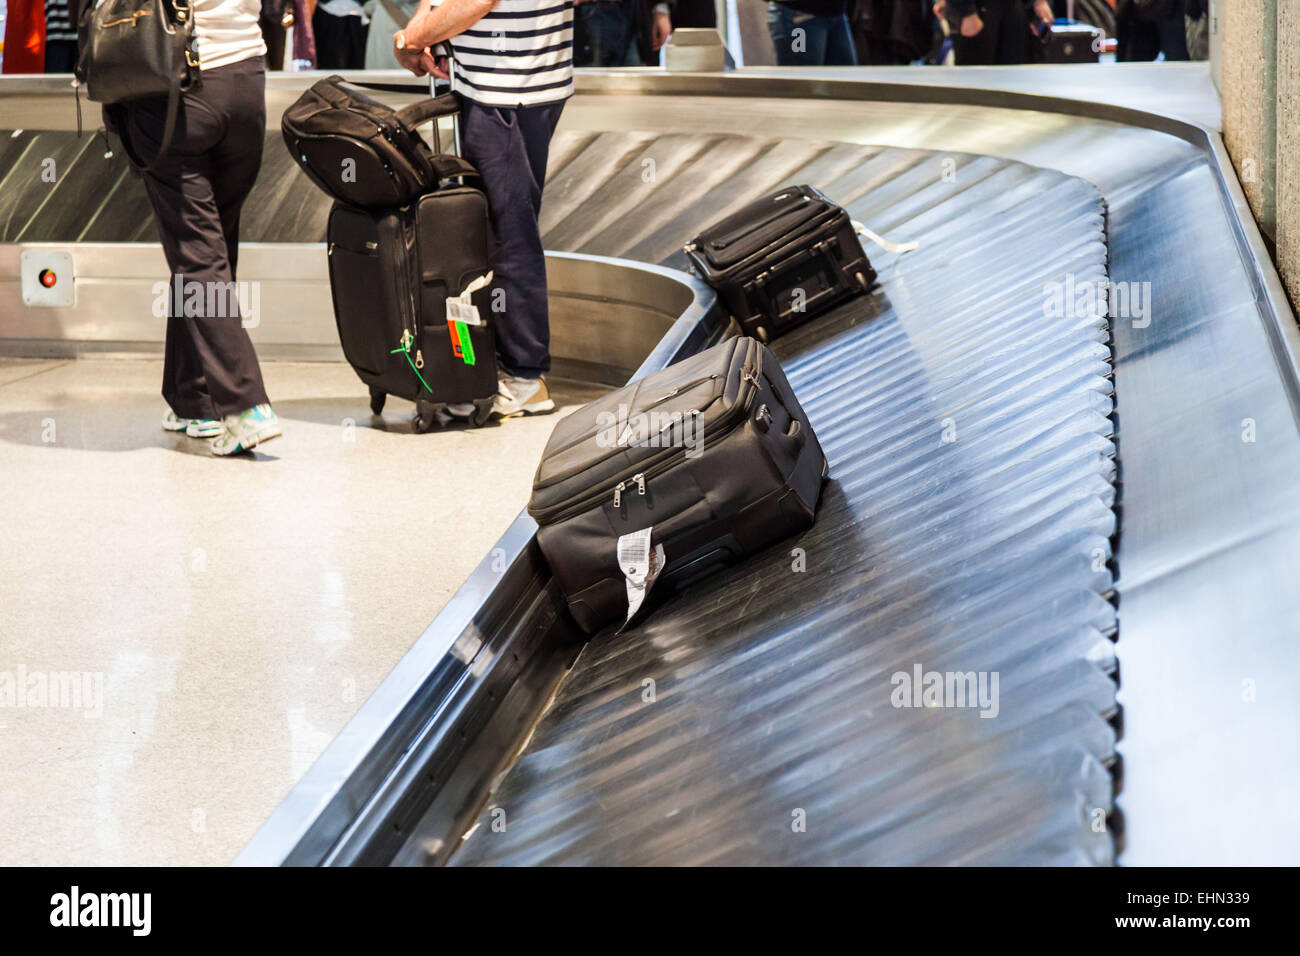 Luggage at an airport. - Stock Image